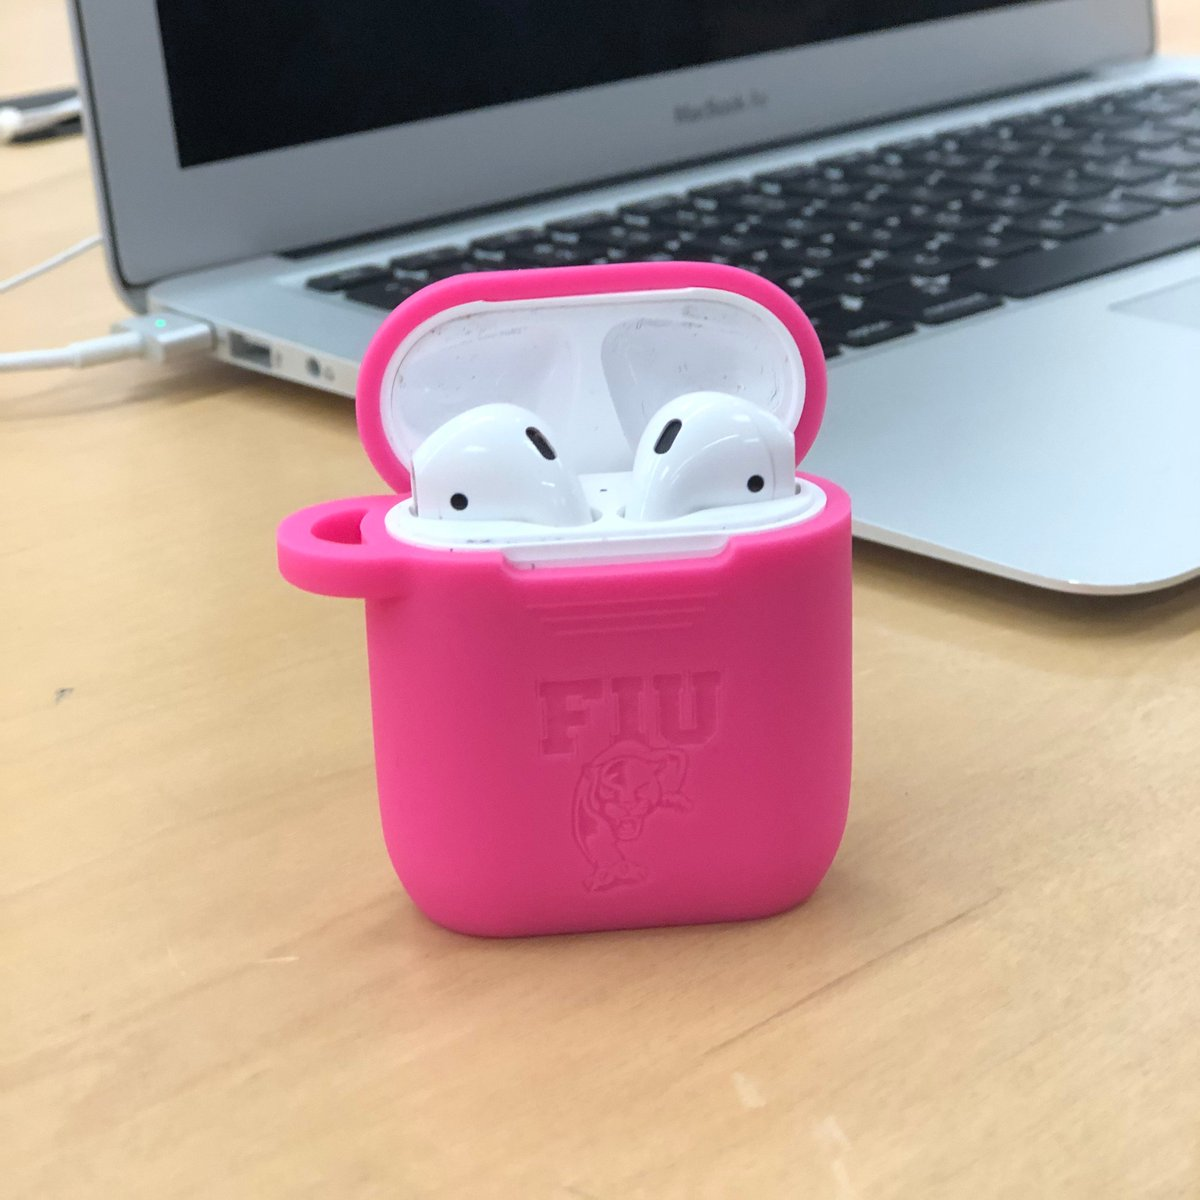 This October, go pink with @fiupanthertech!  $5 of all sales of pink AirPods cases & Apple Watch bands will benefit @FLBreastCancer, a nonprofit, grassroots organization dedicated to ending breast cancer through advocacy, education, and research.